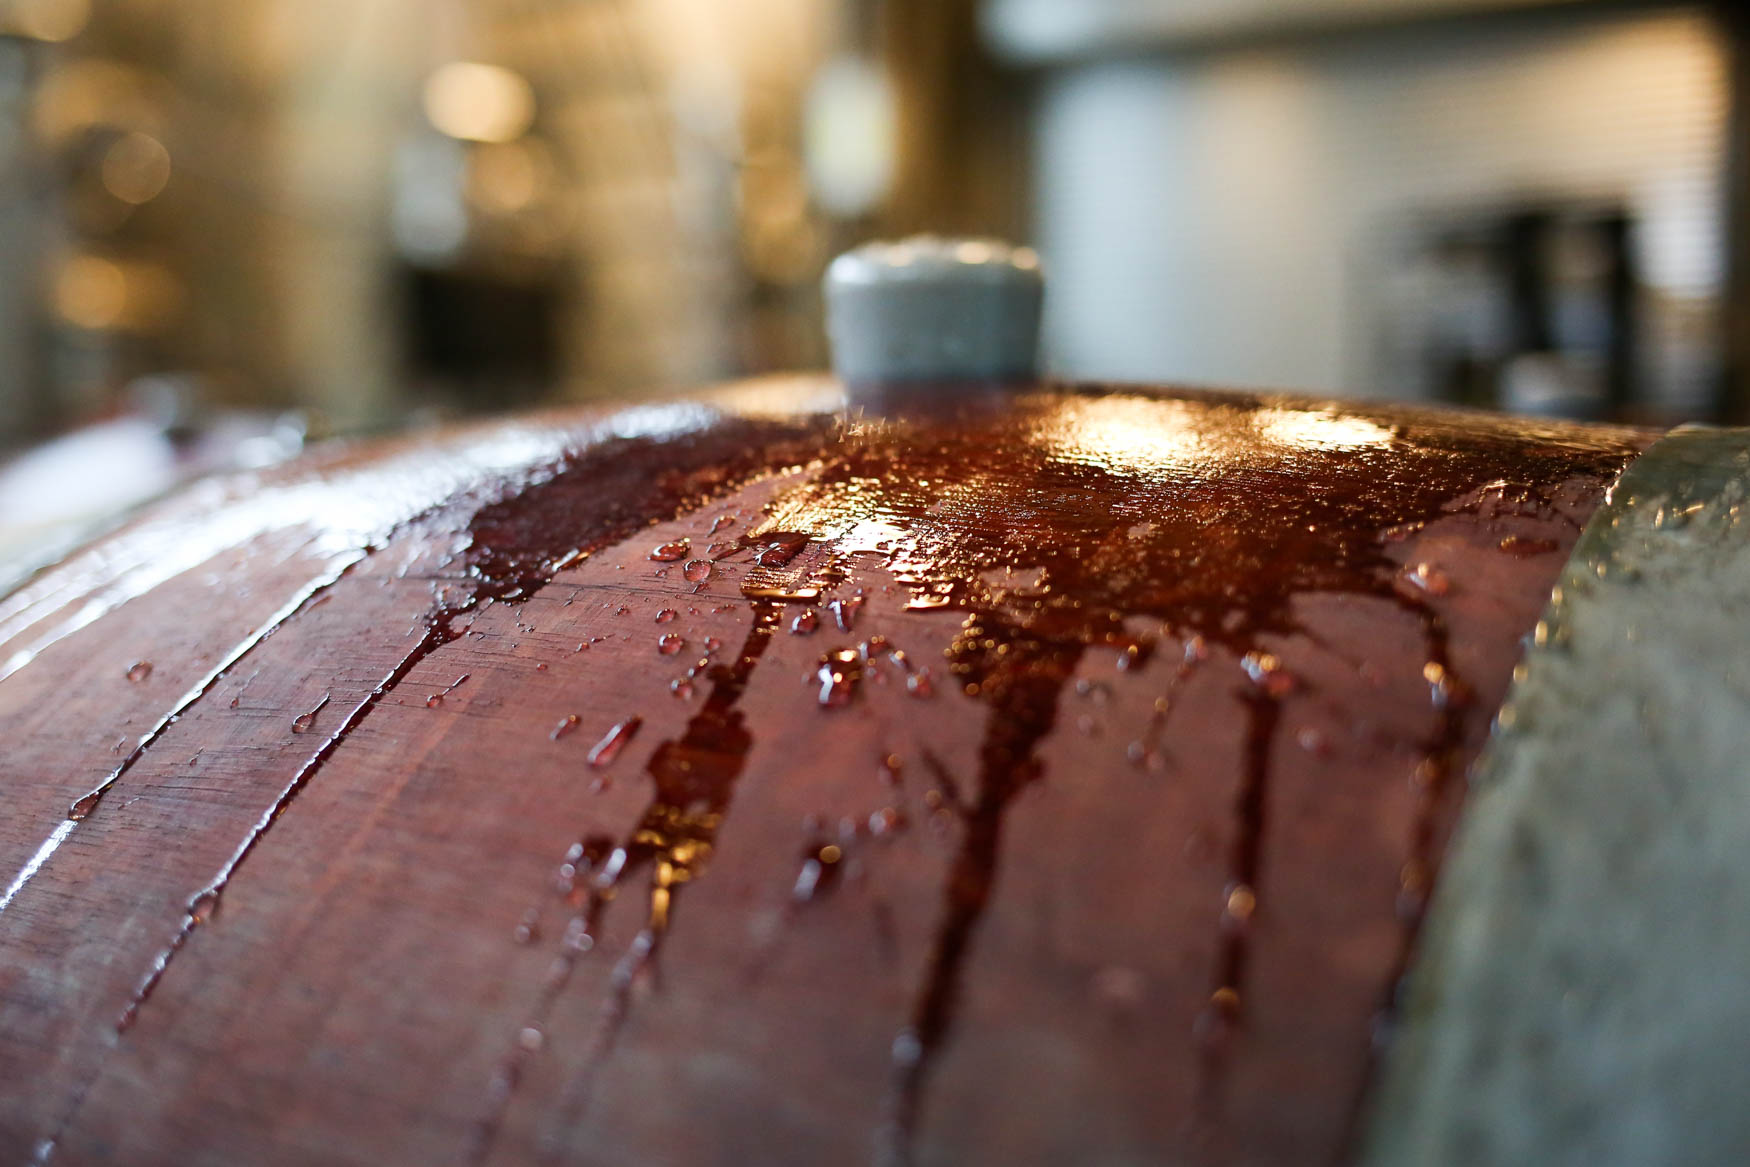 Before the wine is checked, the barrels need to be scrubbed so that mold doesn't inadvertently fall into the wine mixture. (Amanda Andrade-Rhoades/DC Refined)